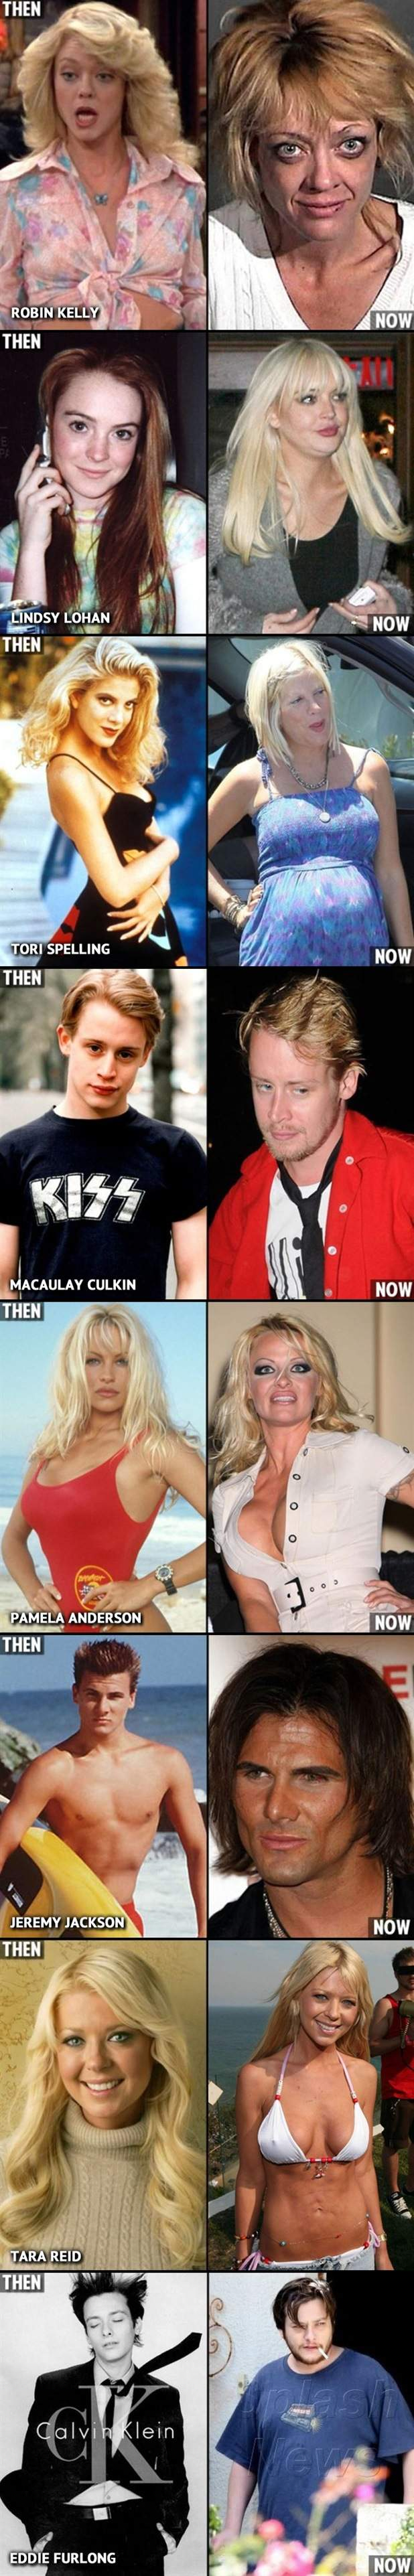 Teen stars then and now.